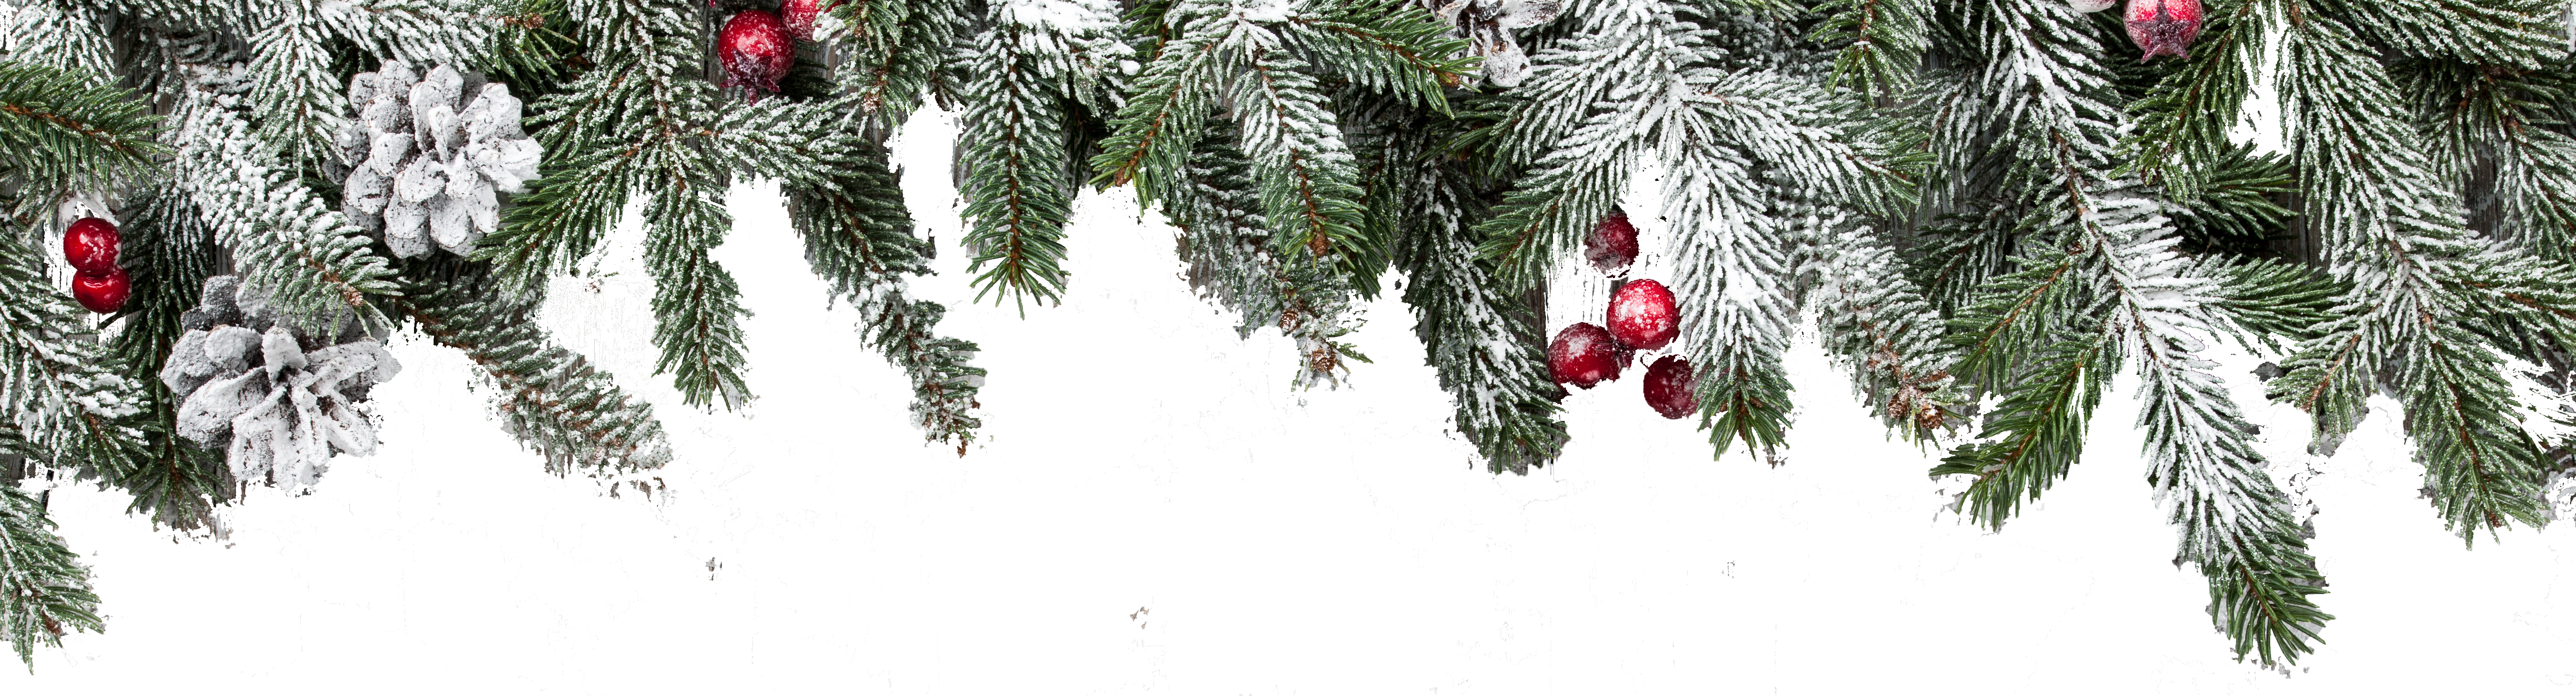 Christmas background TRANSPARENT WITH TITLE   Danish Crown 6042x1632